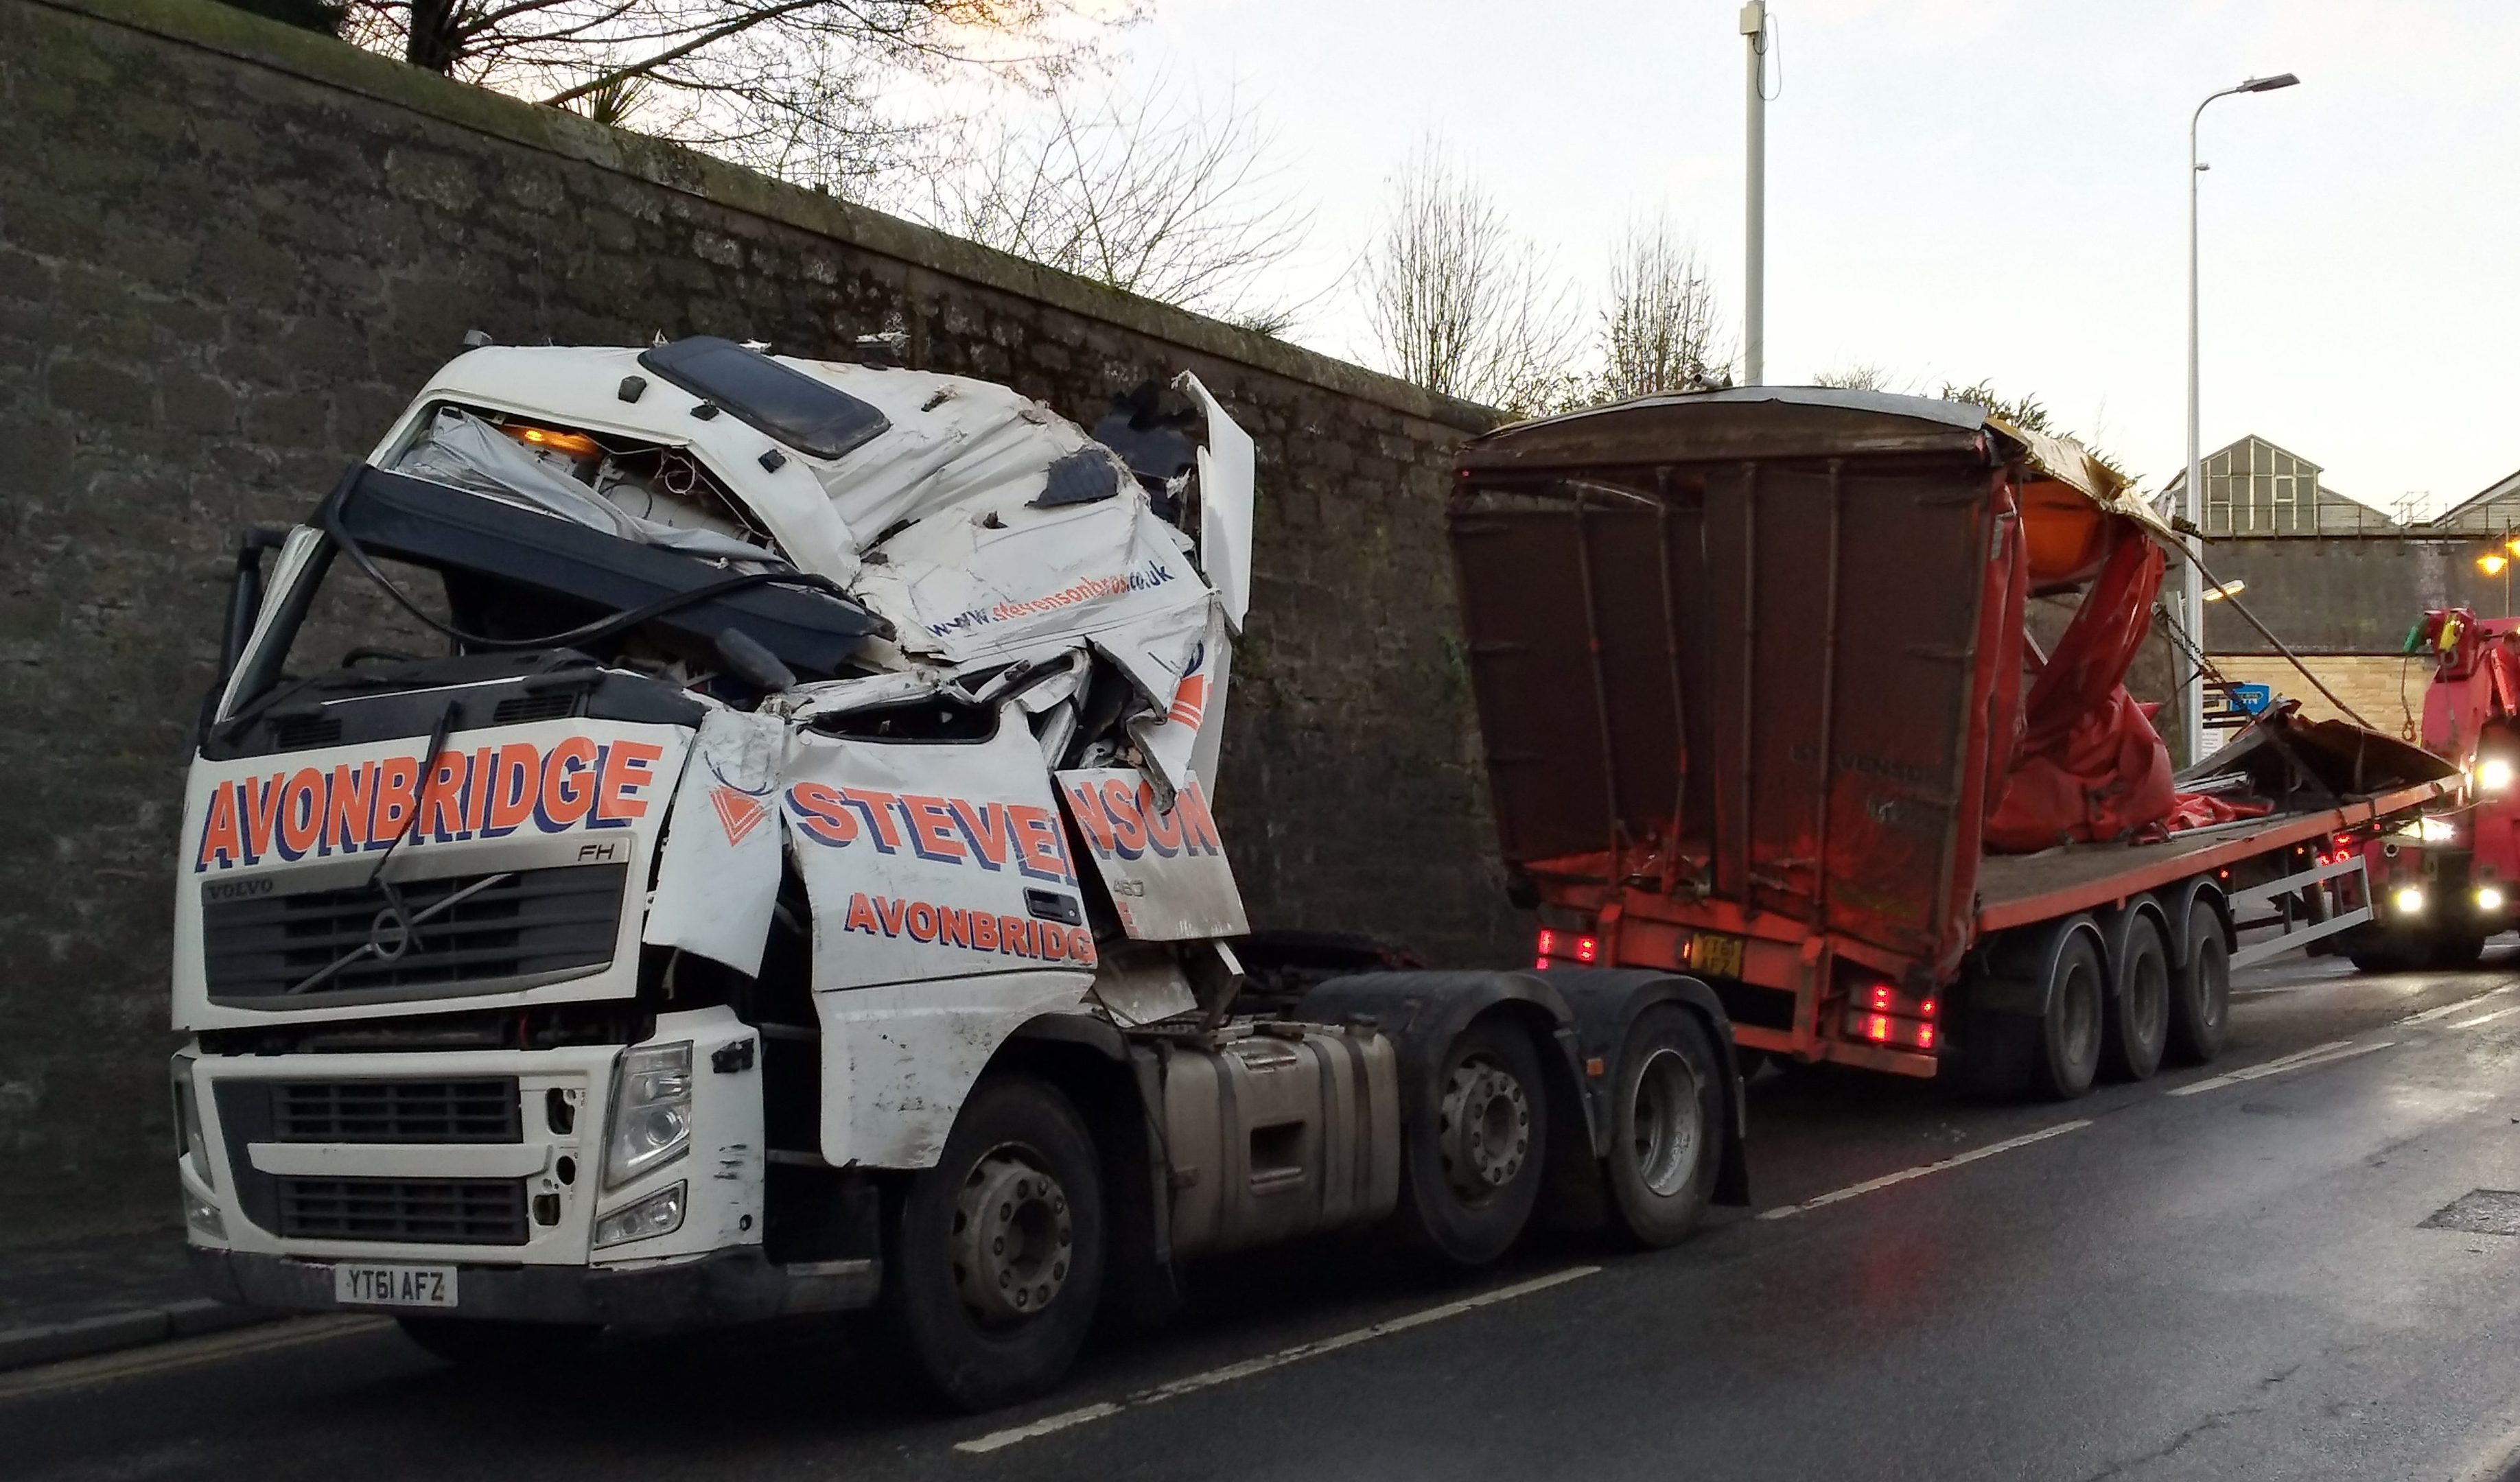 The damaged lorry near Perth rail station.